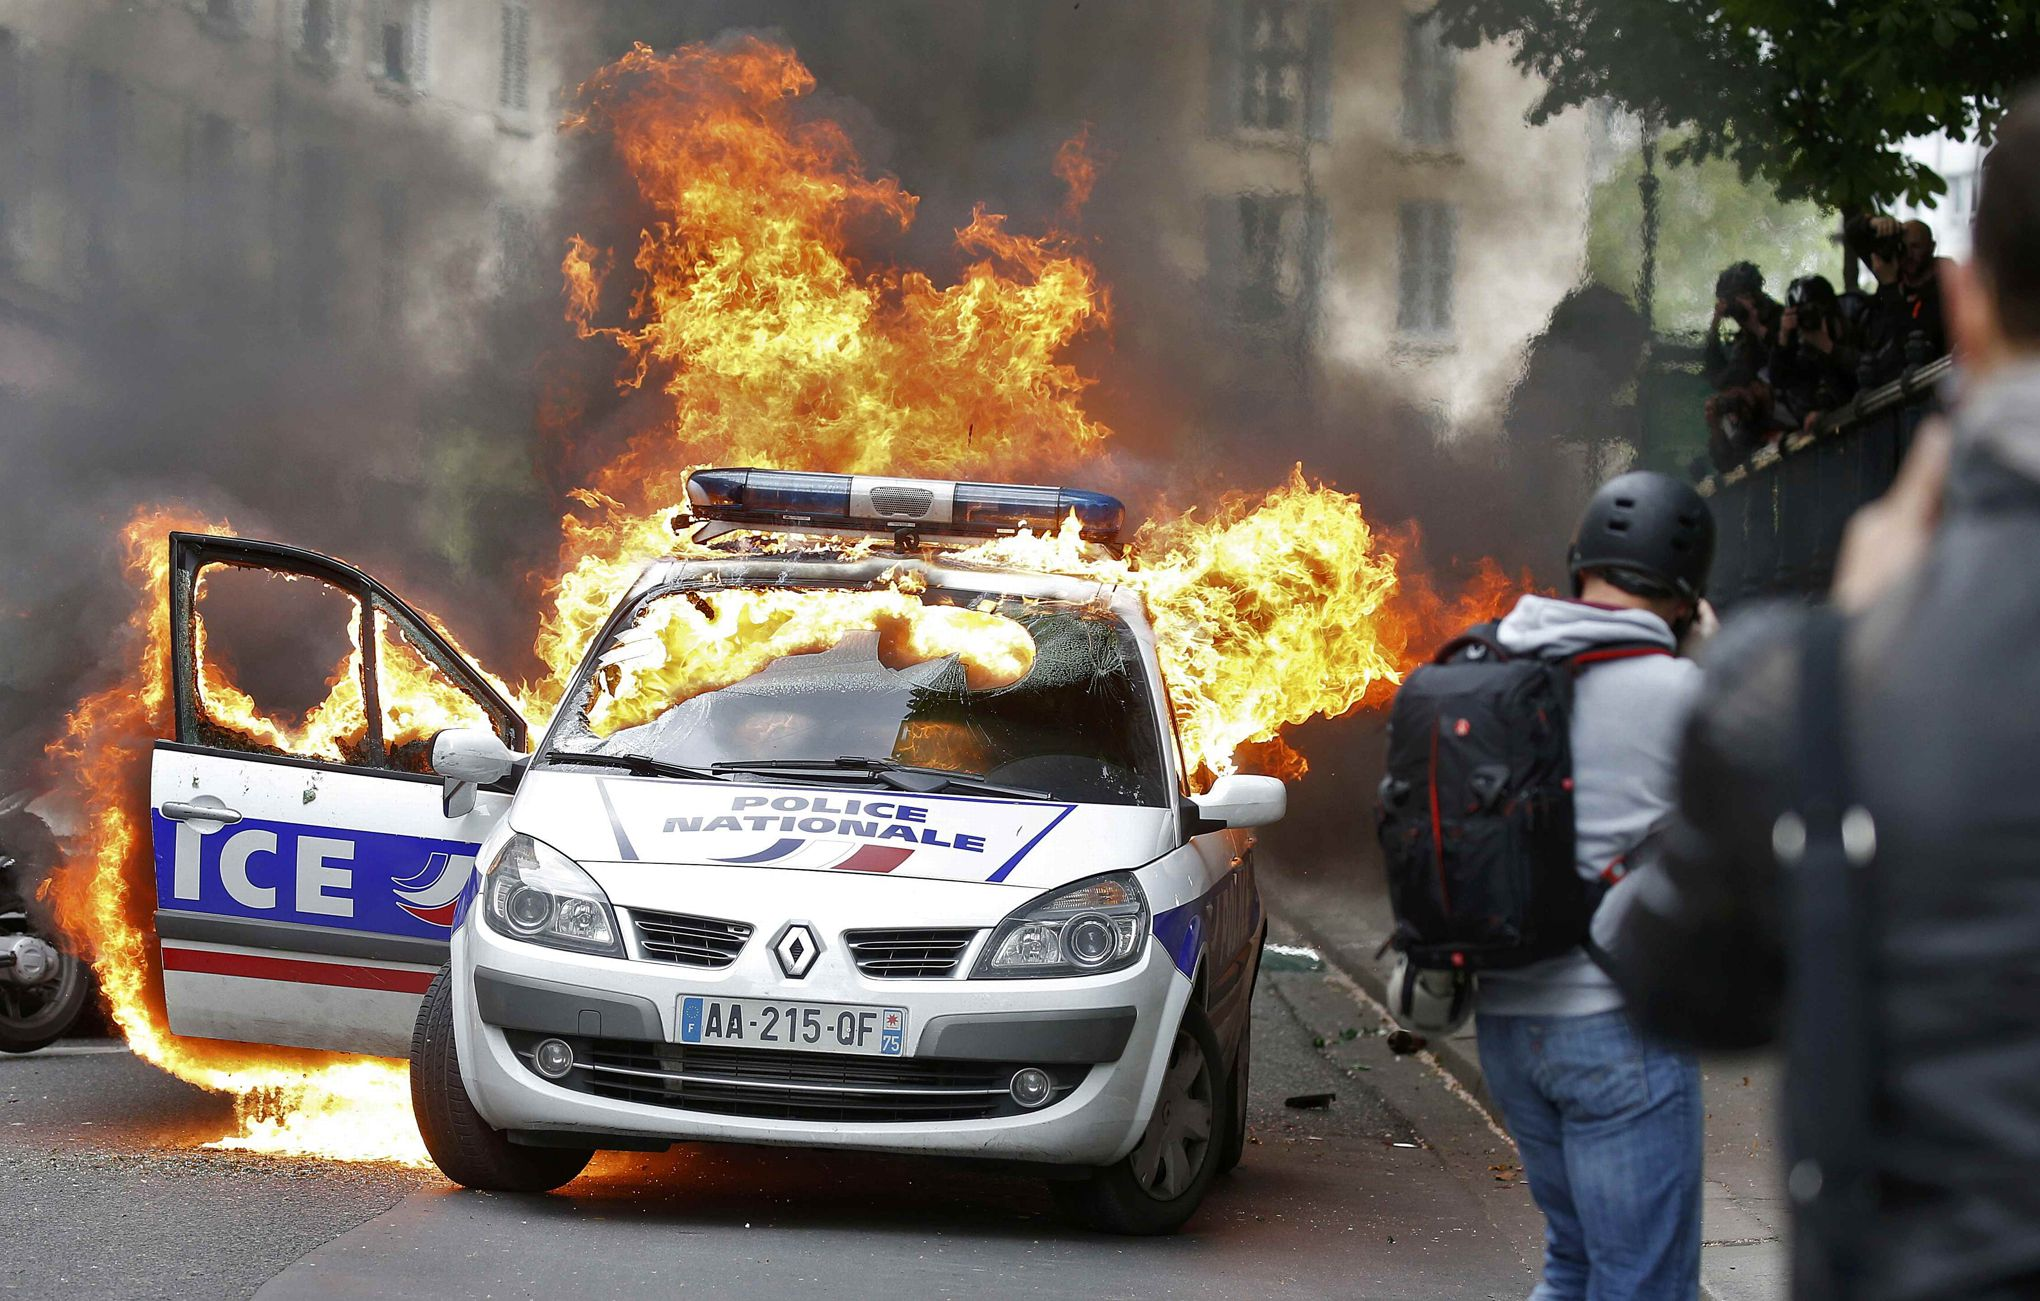 A police car burns during a demonstration against police violence and against French labour law reform in Paris, France, May 18, 2016. REUTERS/Charles Platiau